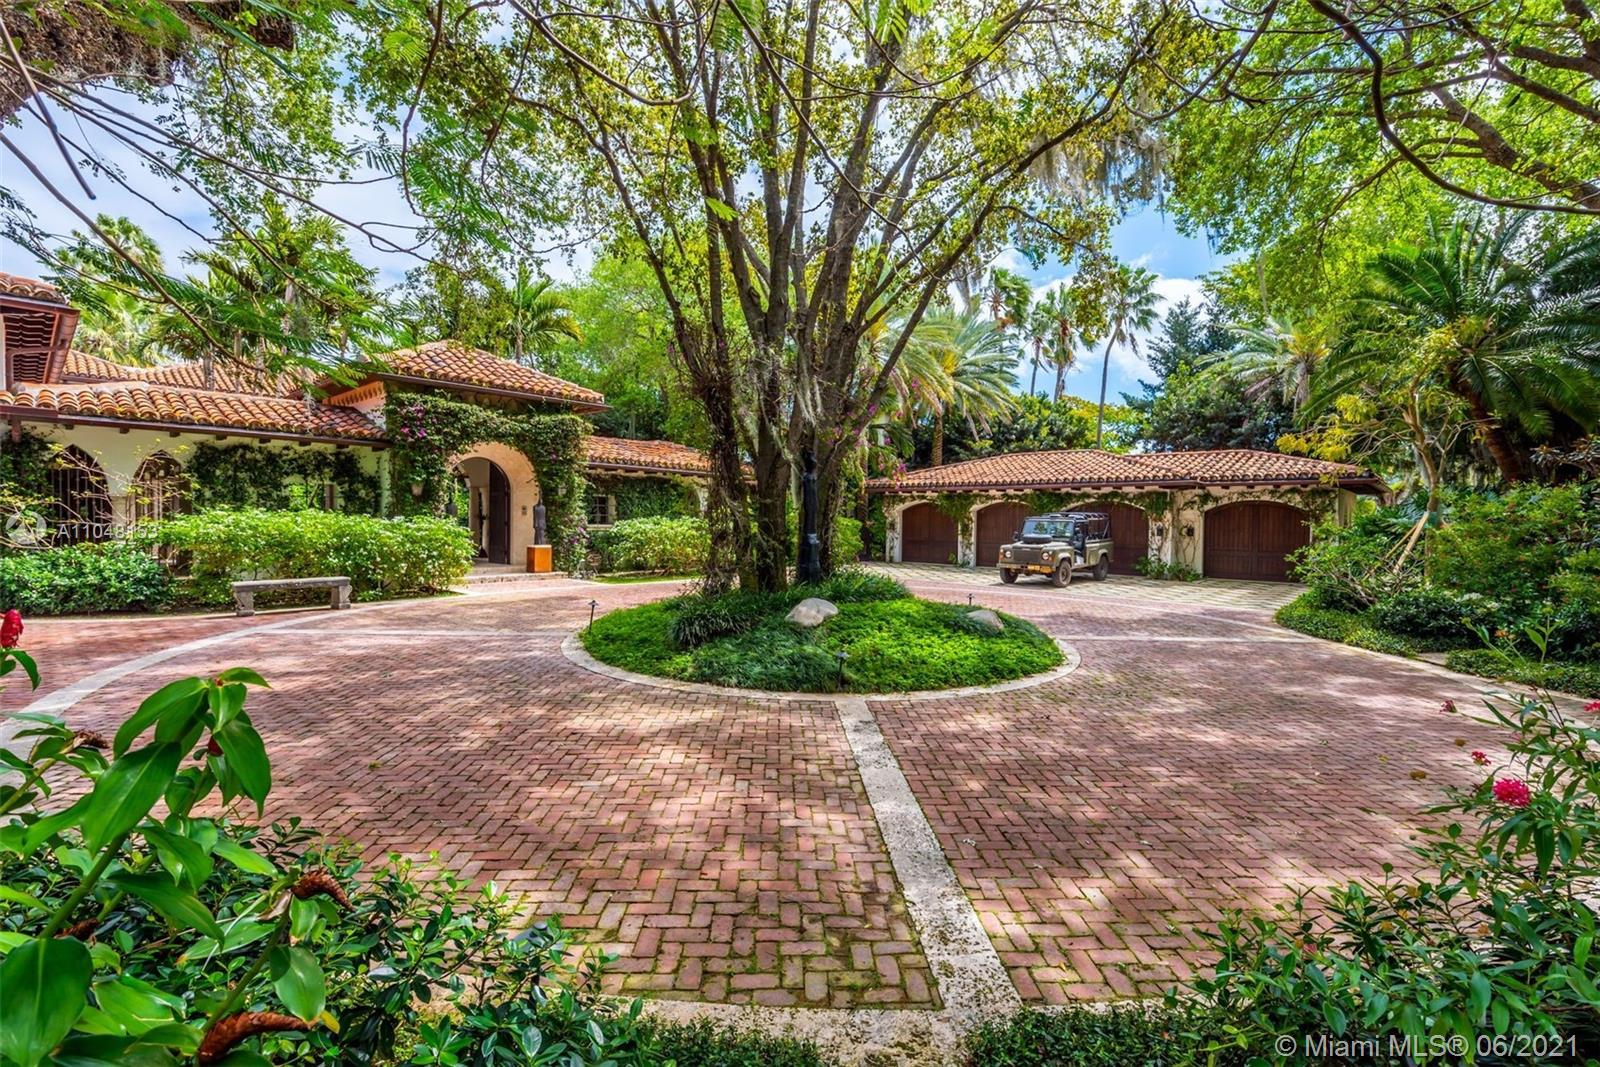 This Mediterranean Estate features 175' of direct waterfront overlooking scenic Indian Creek ideally situated on a rarely offered 1.1 acre lot double lot. This meticulously remodeled & expanded 1937 estate features state-of-the-art technological integration & boasts 9BR/11+2BA, a 22,000 gallon pool, pool cabana, koi pond, sculptured gardens, gym, spa, glam room with hair salon, wine cellar, library, safe room. 2 BD guest house, 2 guest apts, and a 100 foot private dock with a boat lift and a 3 jet ski lift. 4 Car Garage + 2 Car Garage.